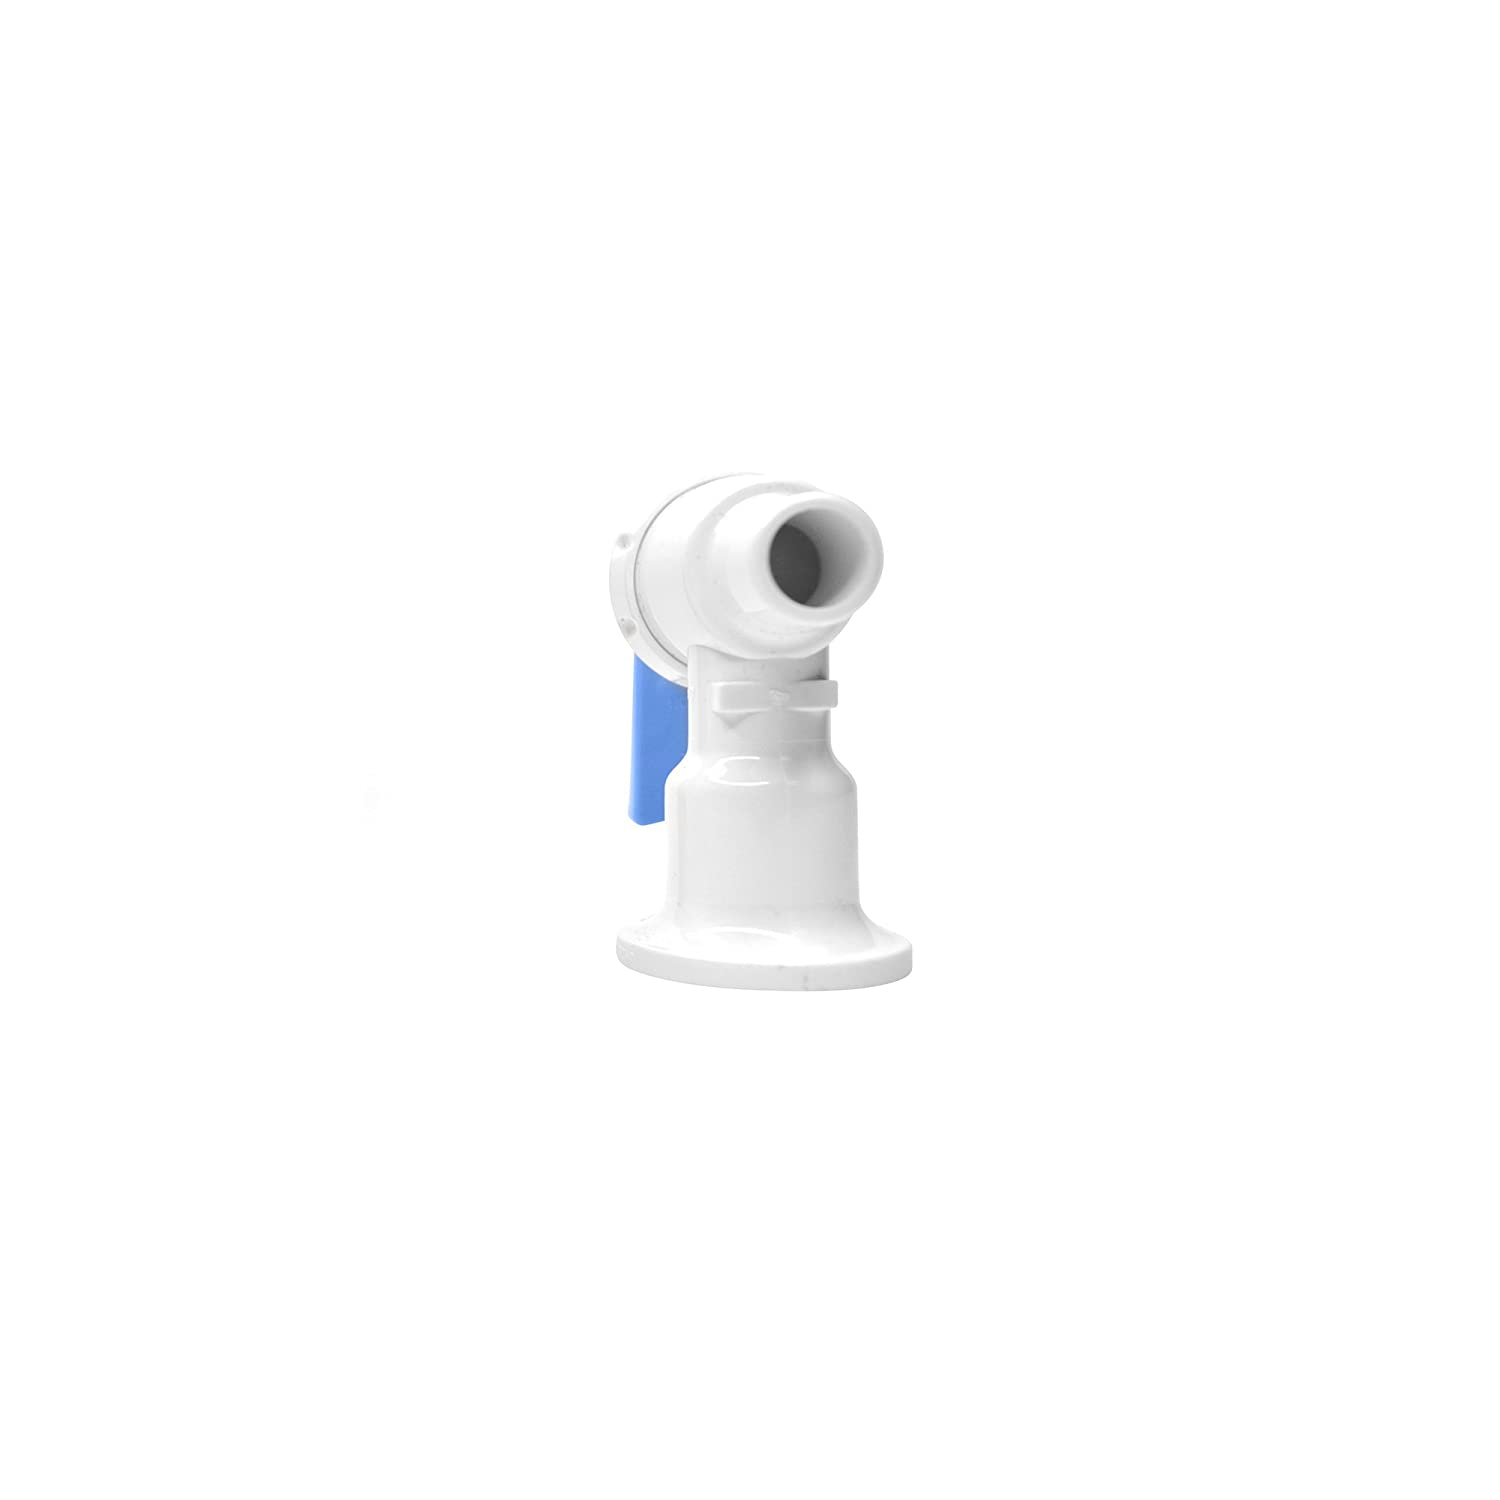 Tomlinson 1008780 Complete Faucet, White Body with Blue Handle ...